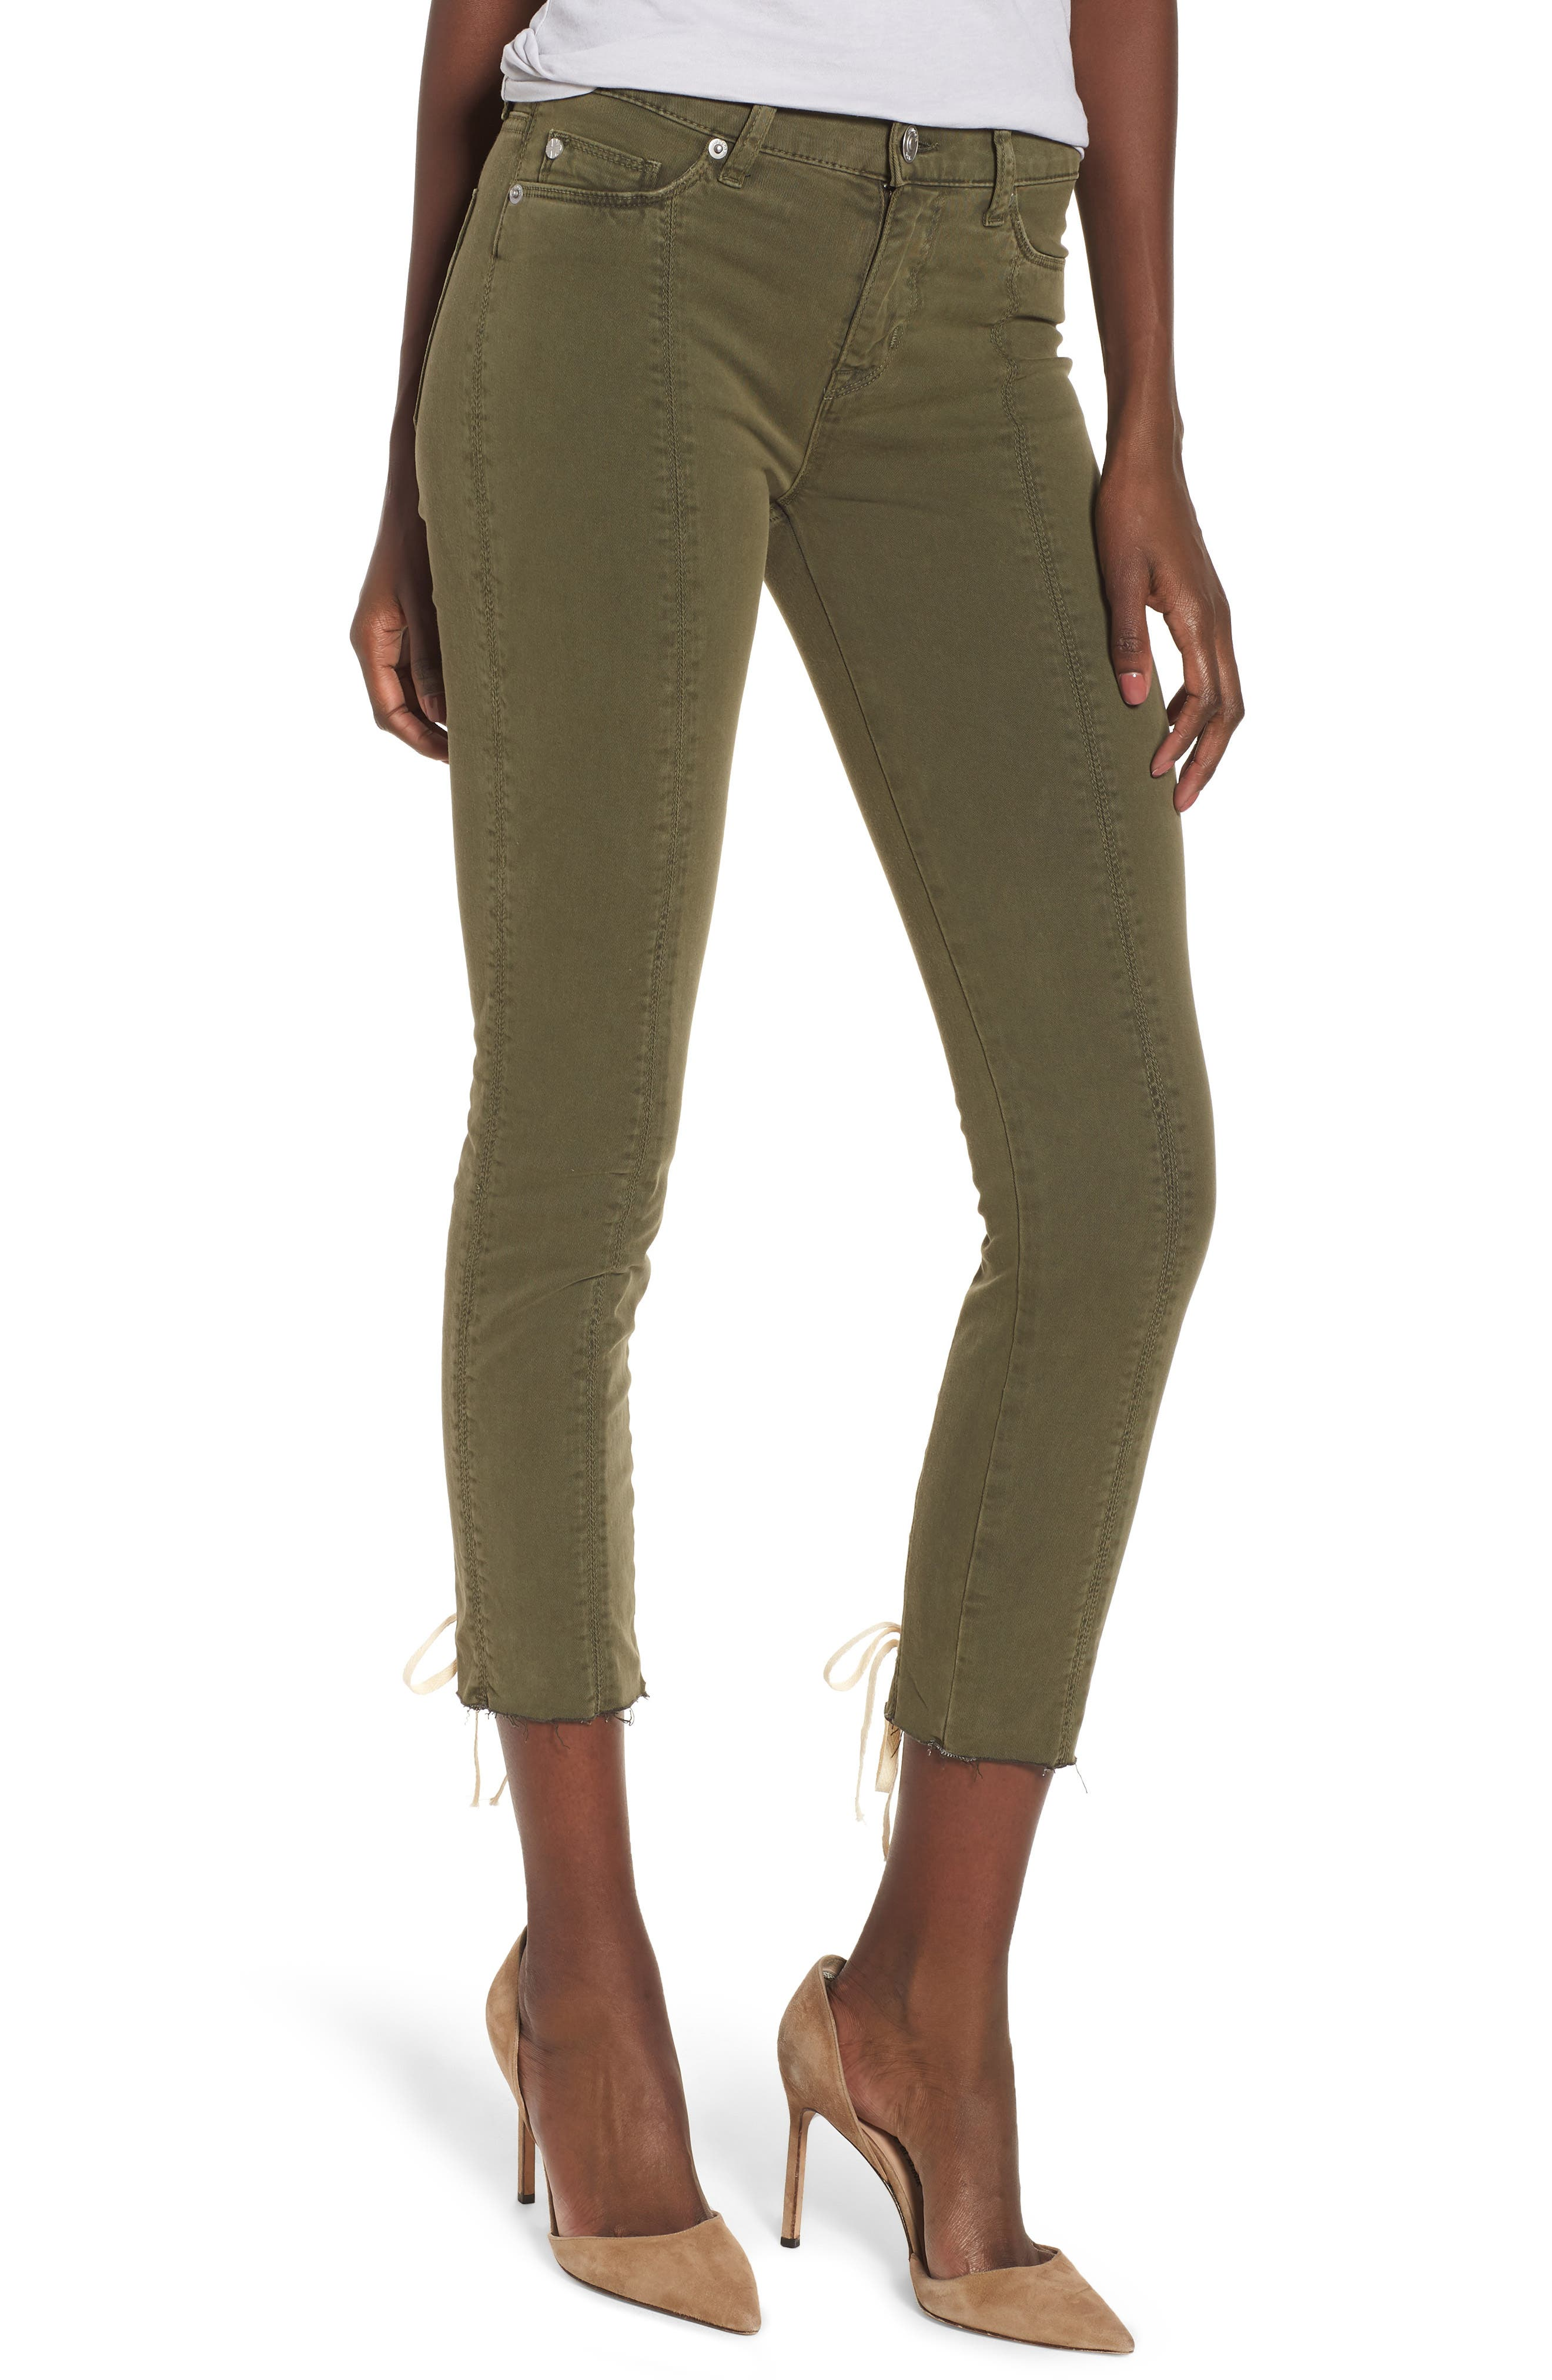 Nico Lace-Up Crop Super Skinny Jeans,                             Main thumbnail 1, color,                             Crushed Olive